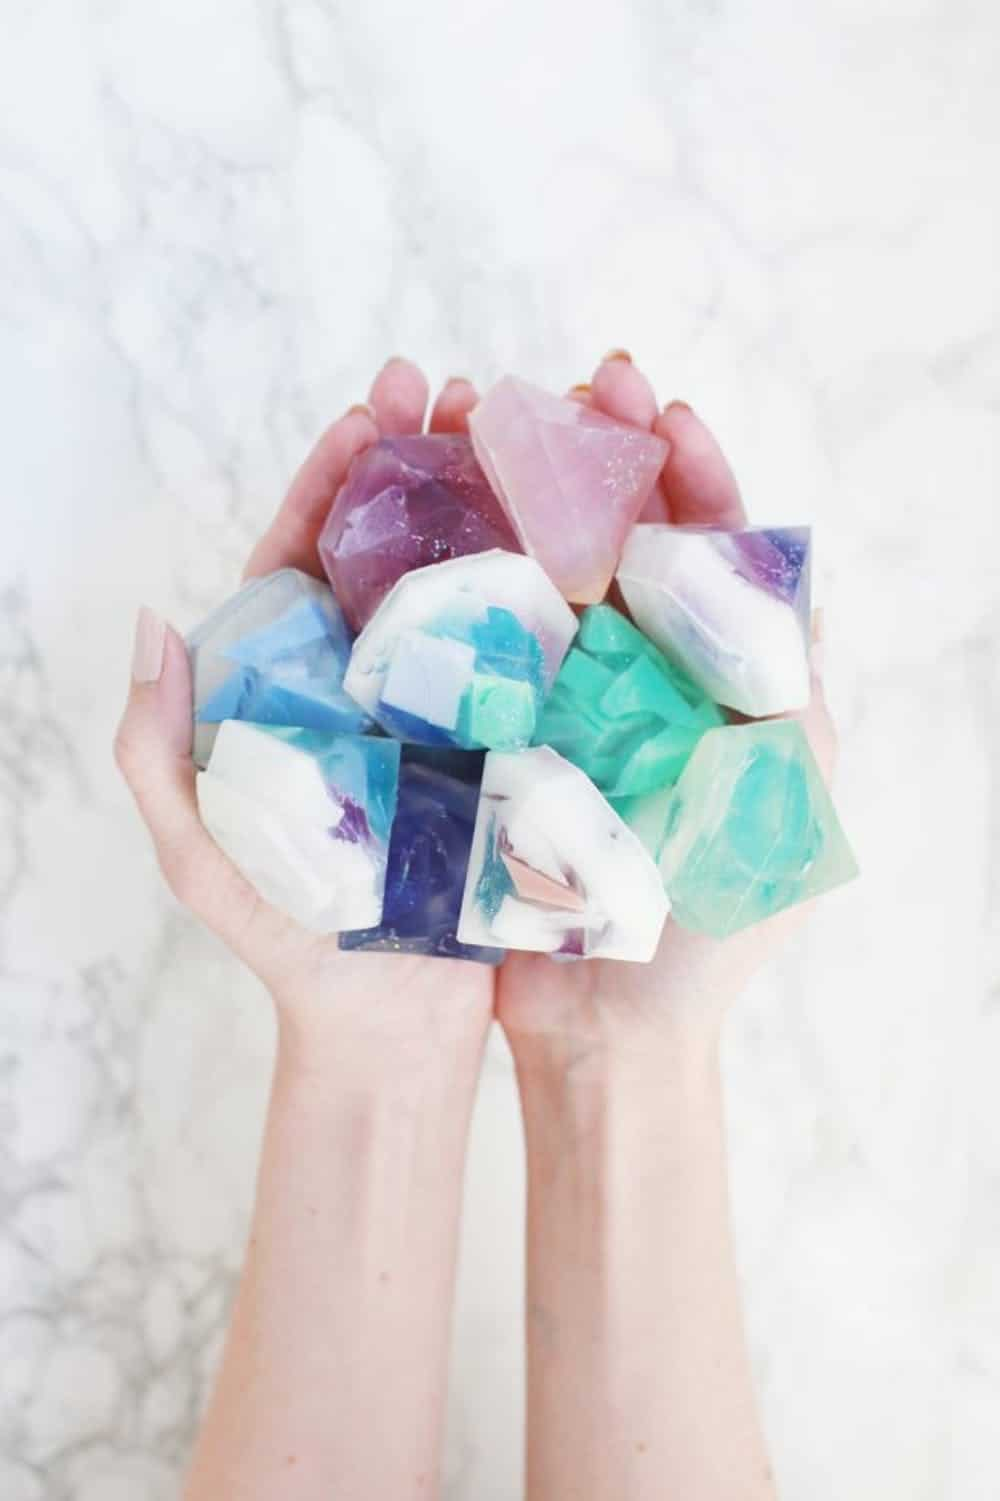 Gemstone soap diy